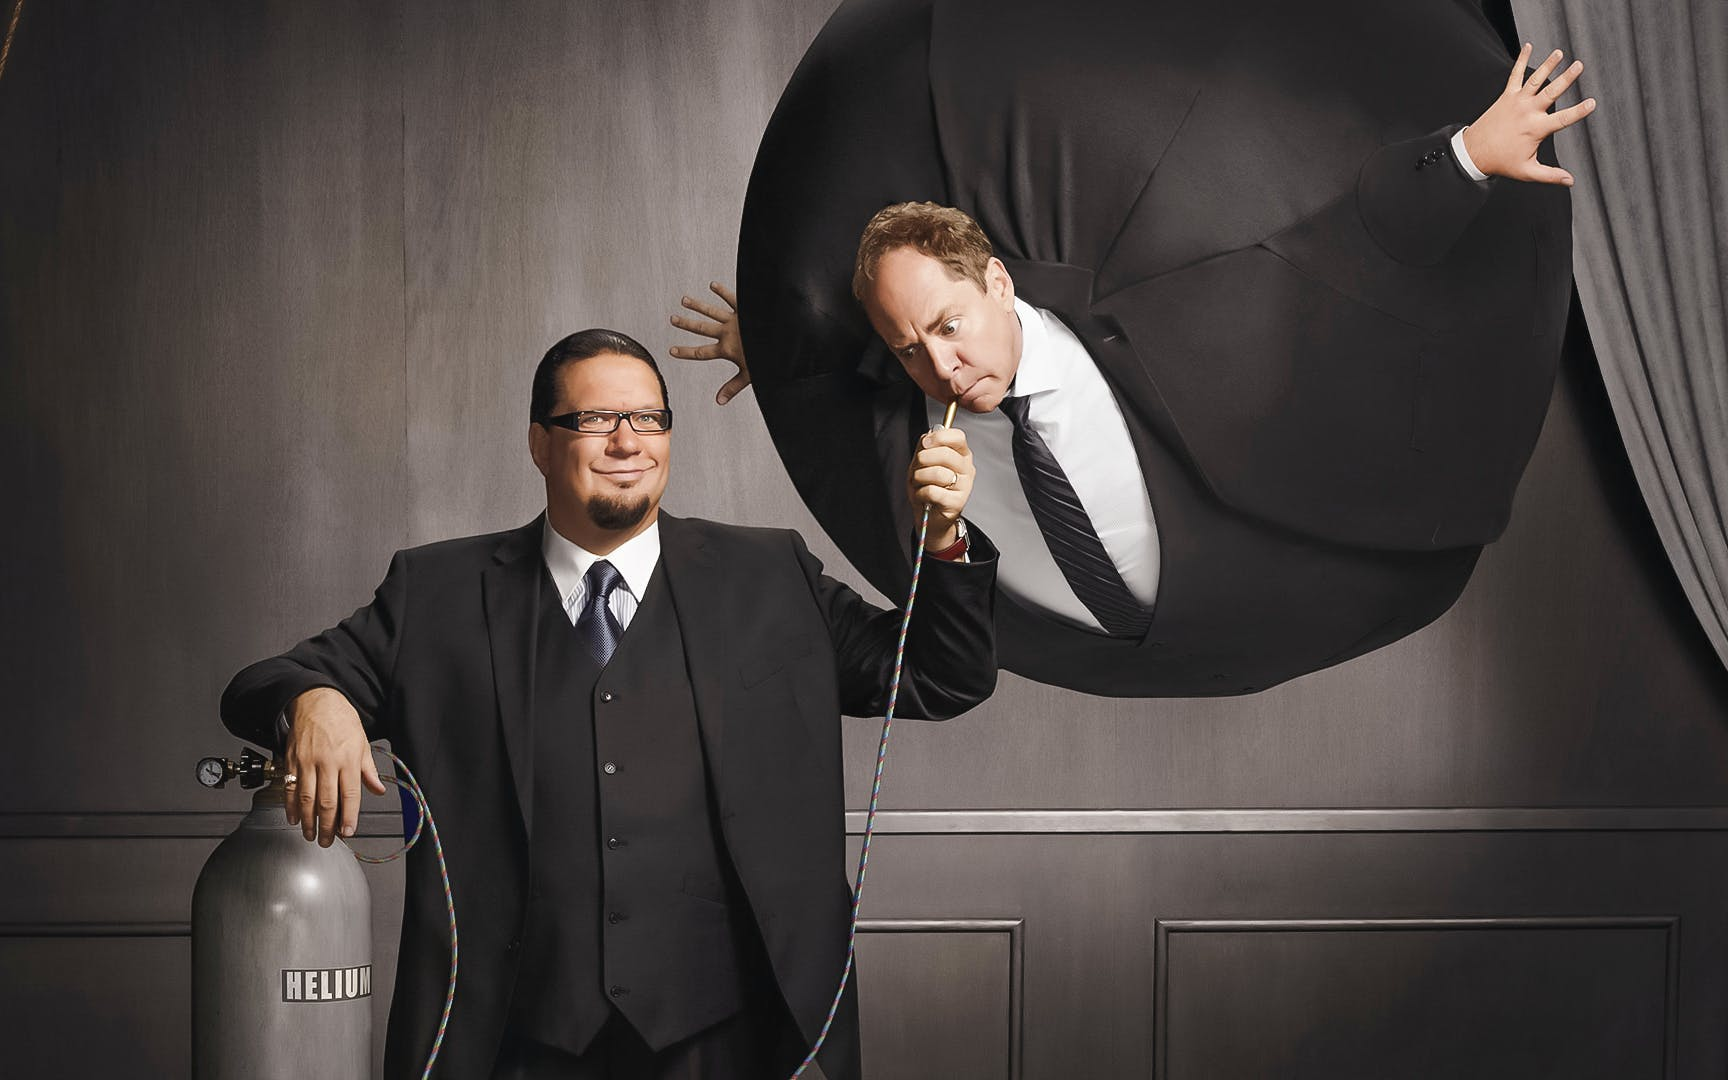 Best Vegas Shows - Penn and Teller